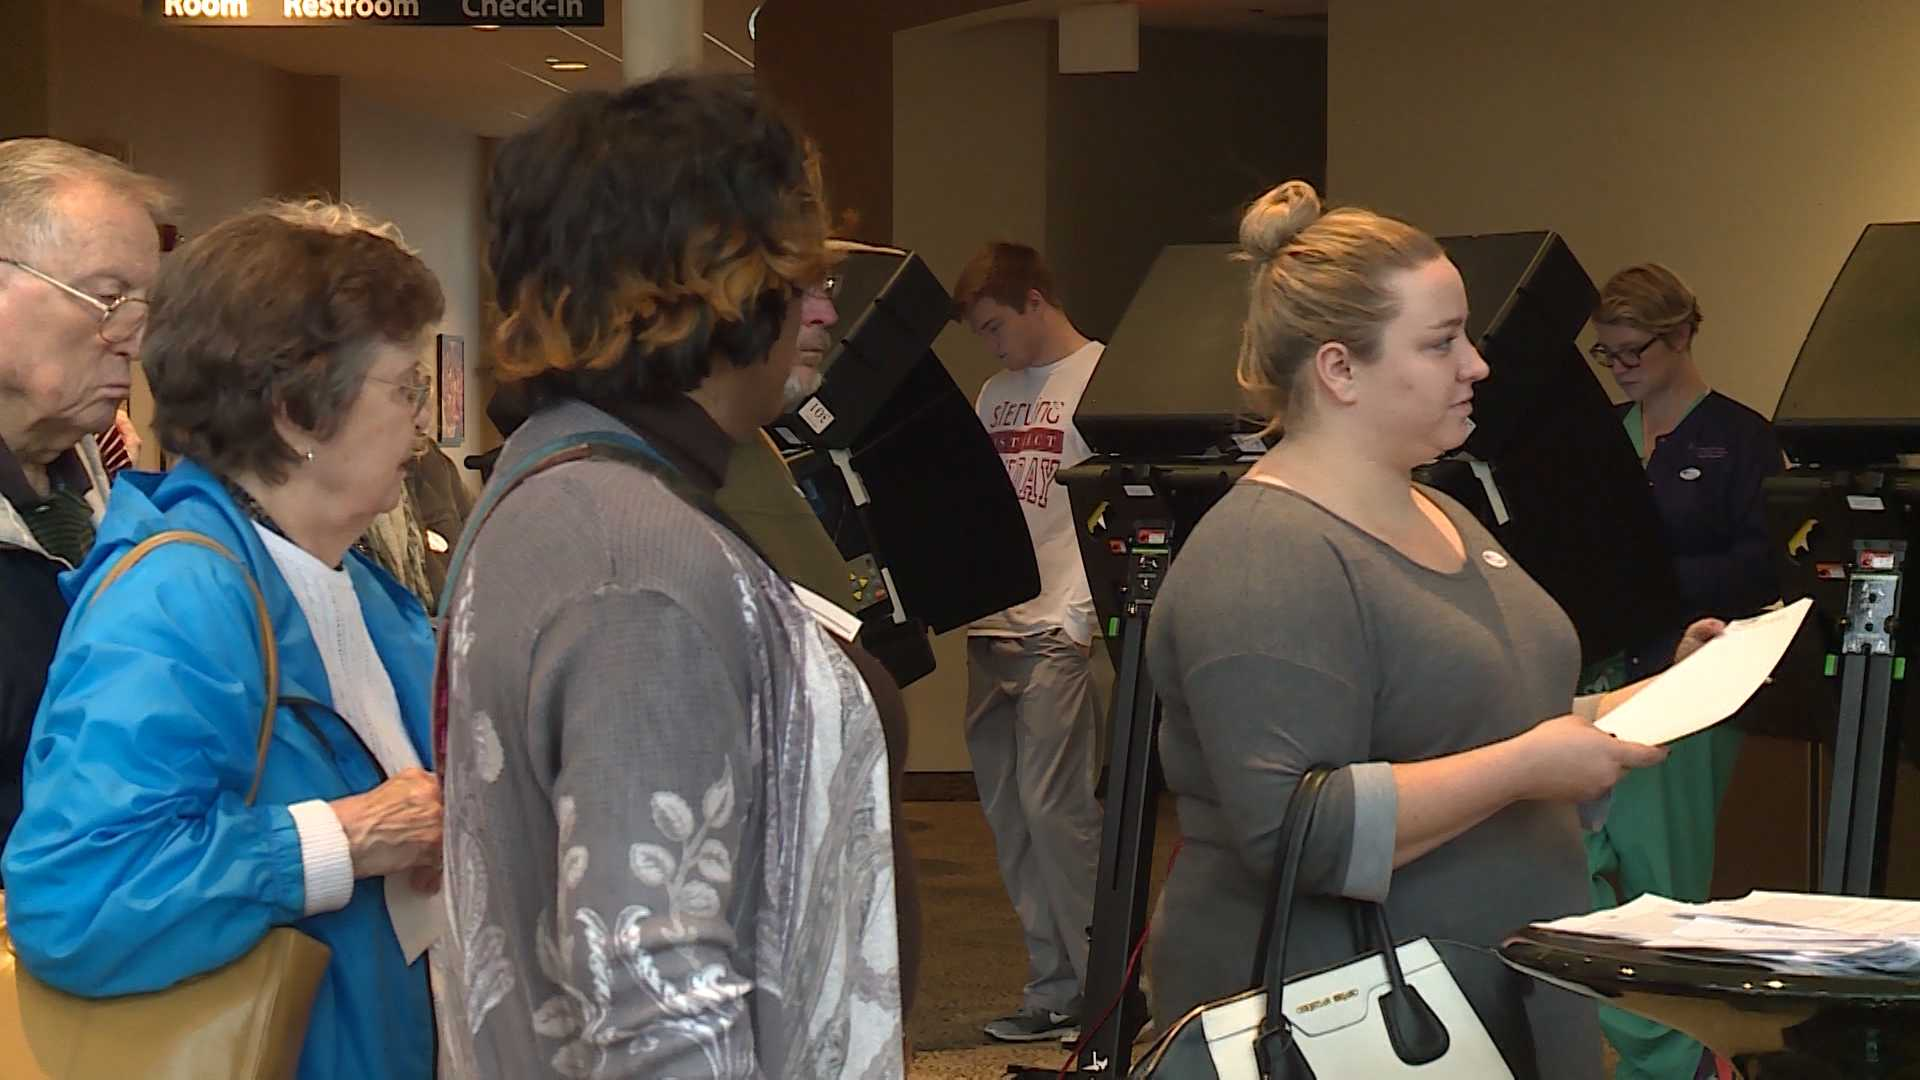 Voters in line at the Trinity Fellowship Assembly of God in Fayetteville, November 2016